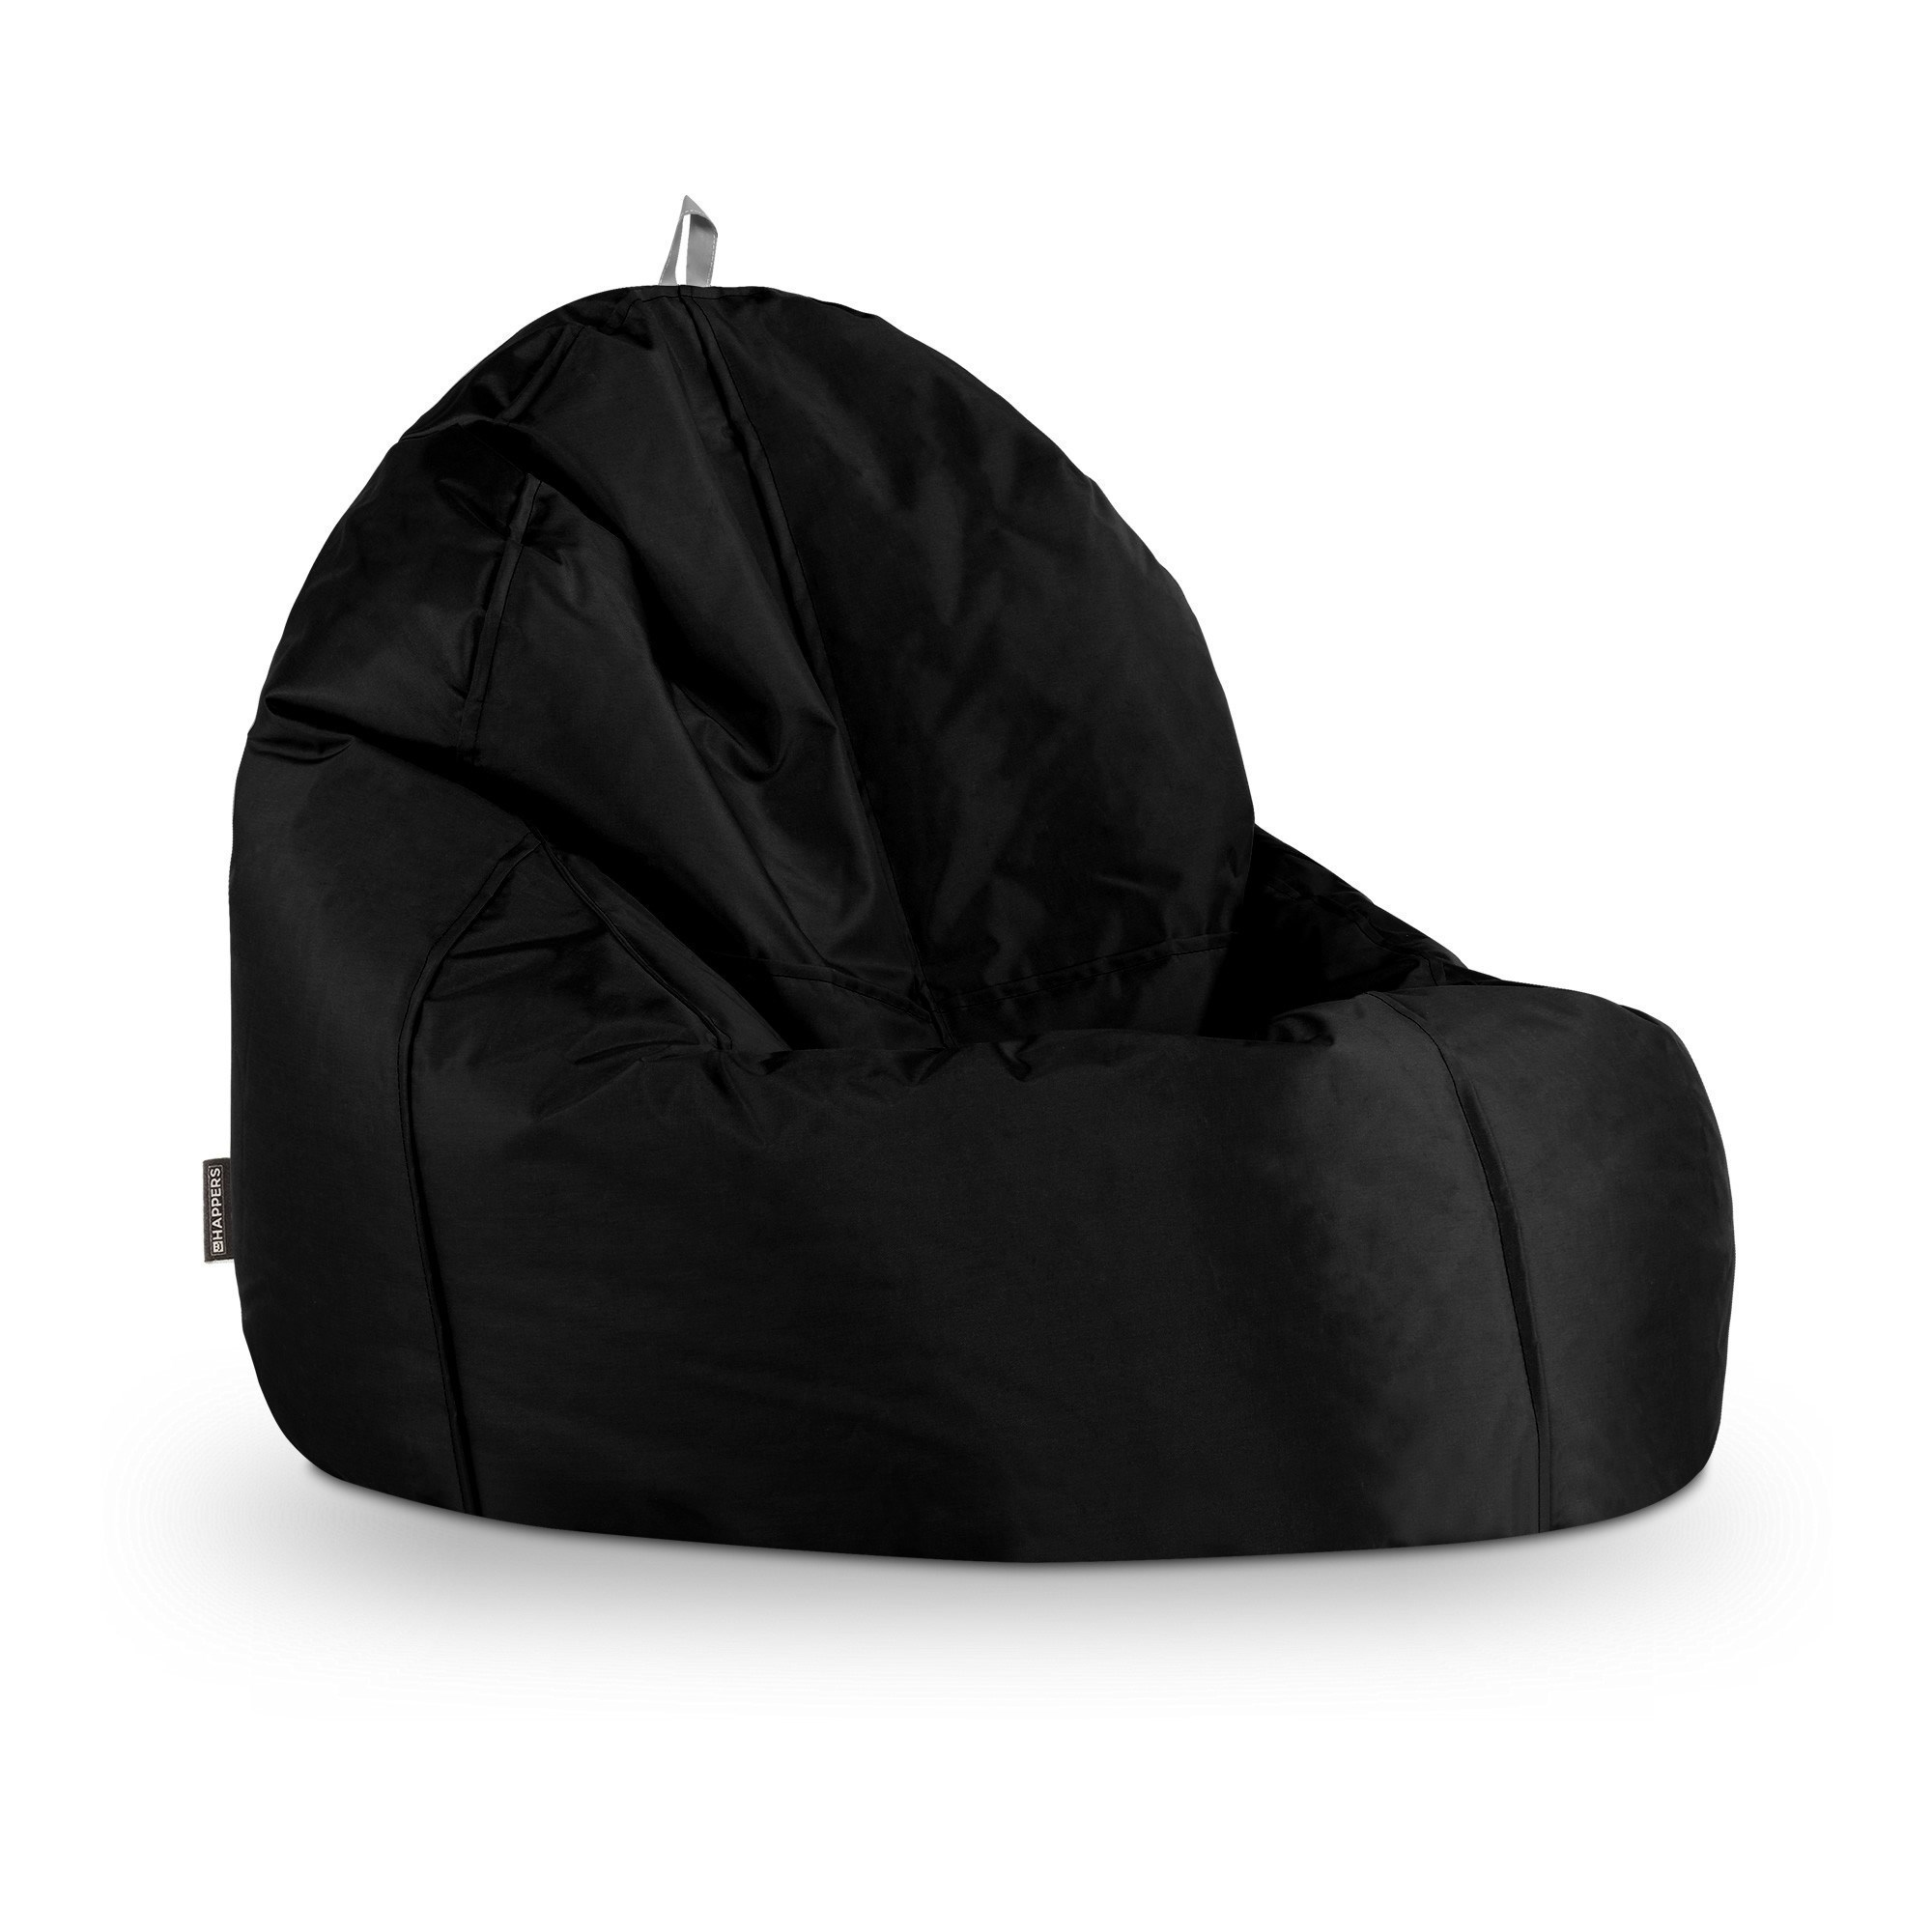 Puff Sillon Puff Lounge Naylim Impermeable Negro En Puffdepera